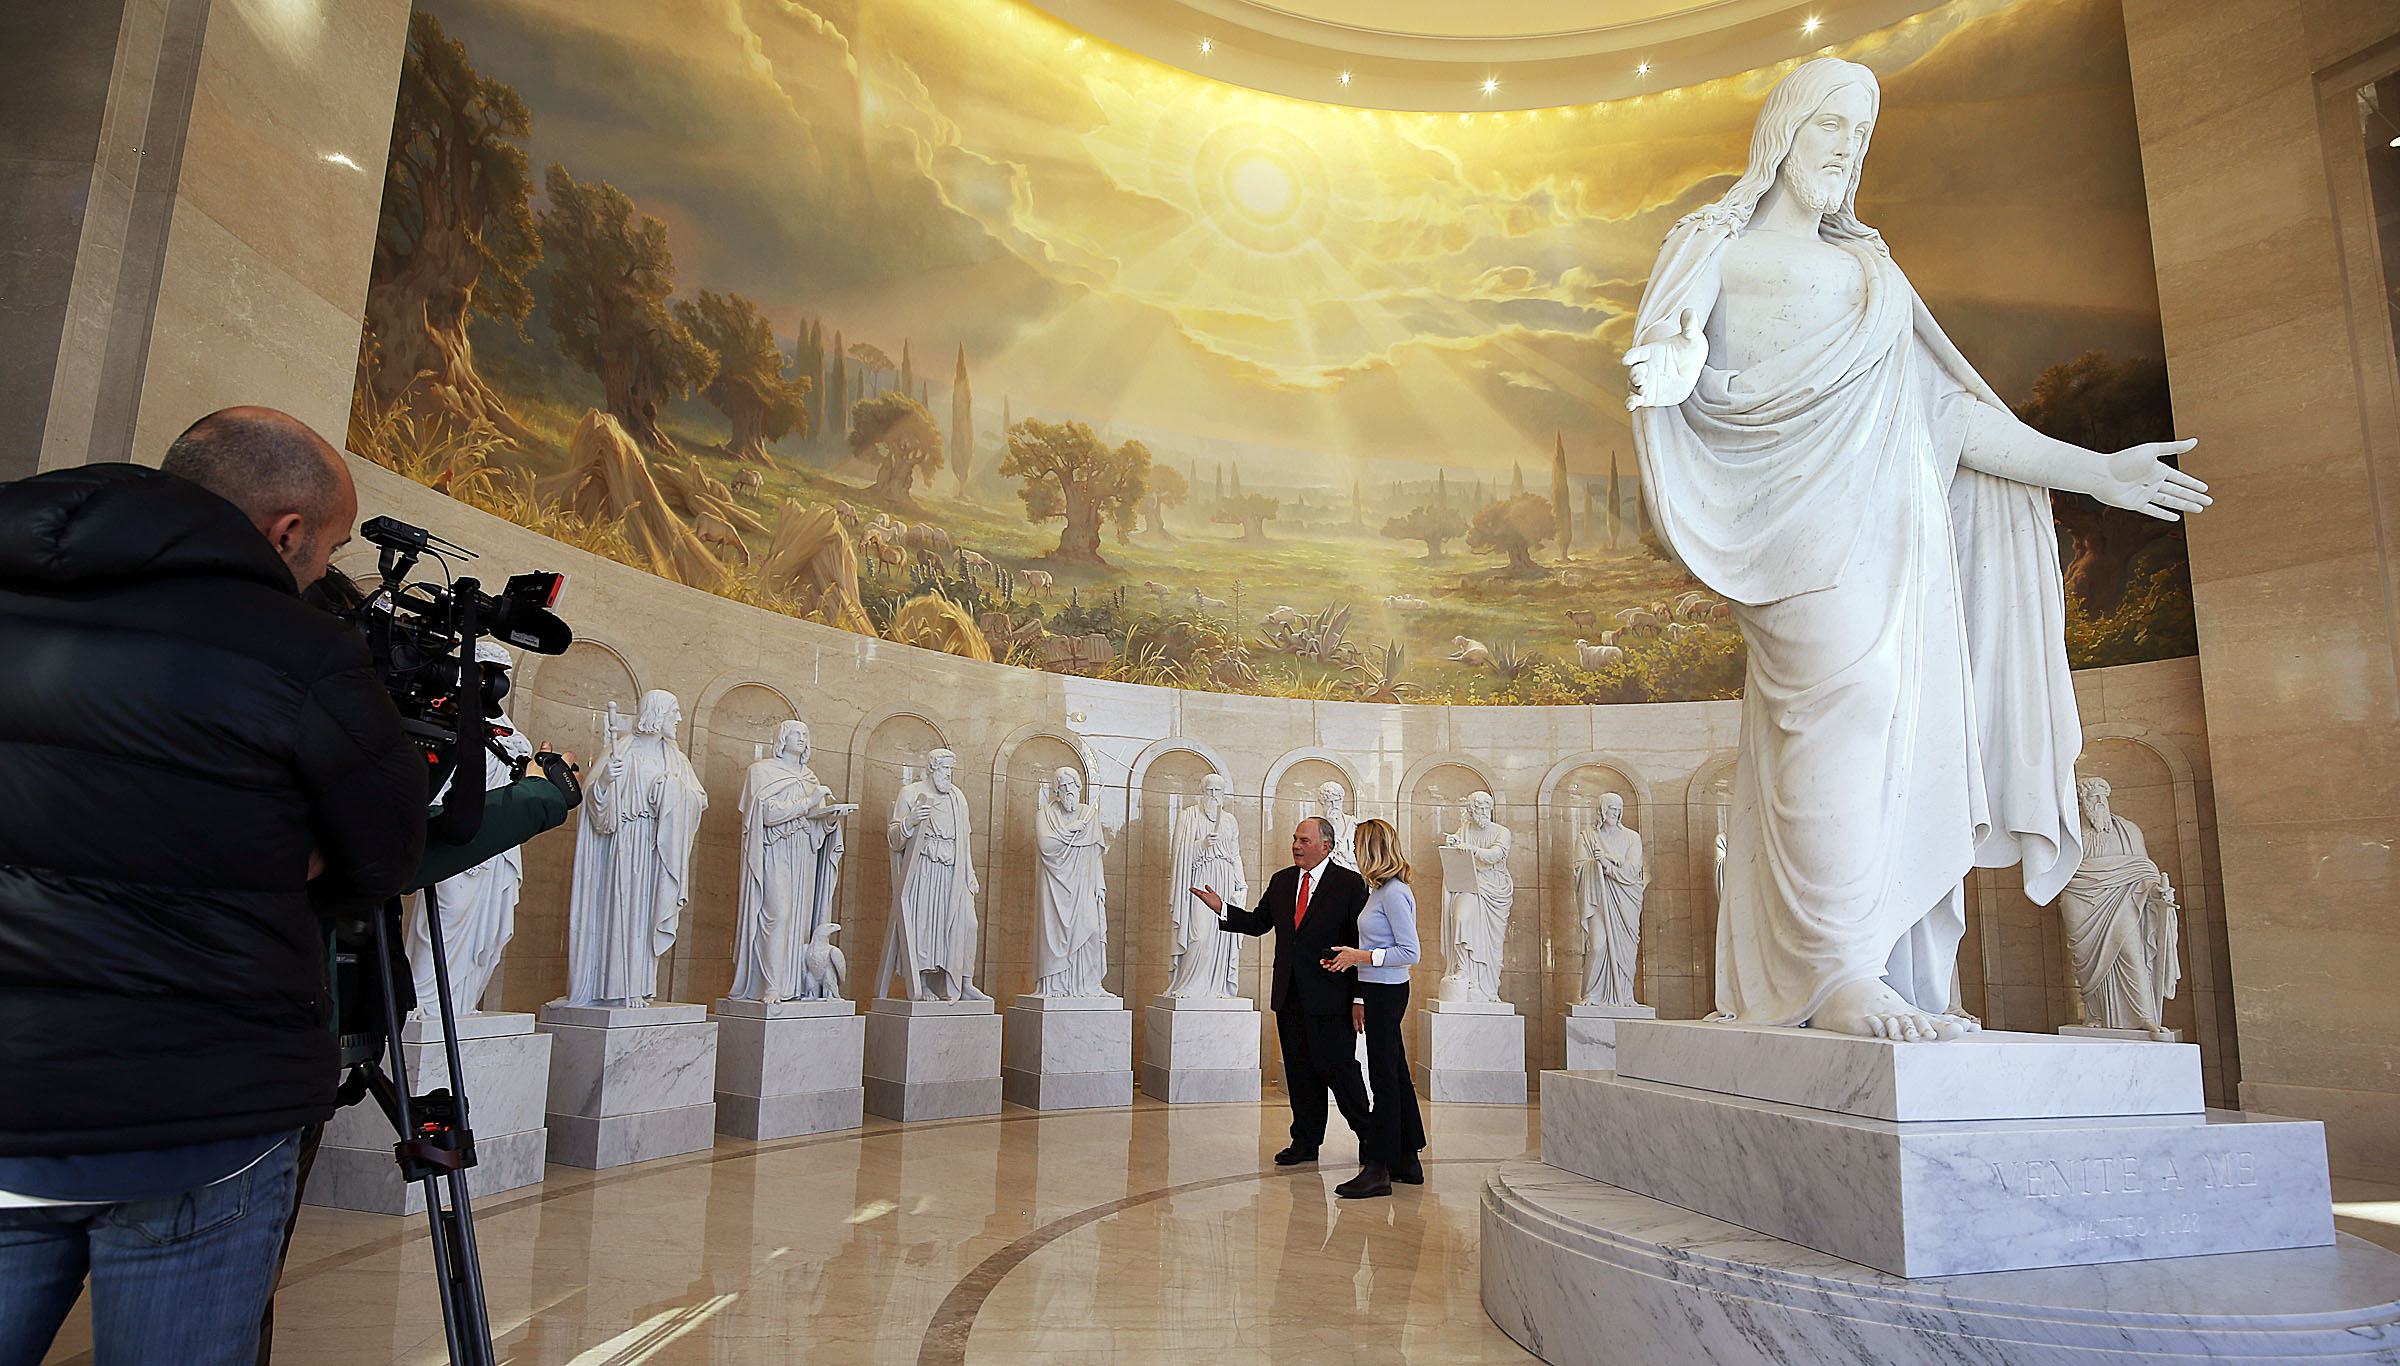 Elder Ronald A. Rasband is interviewed by CNN correspondent Delia Gallagher in the Rome Temple Visitors' Center of The Church of Jesus Christ of Latter-day Saints on Monday, Jan. 14, 2019.